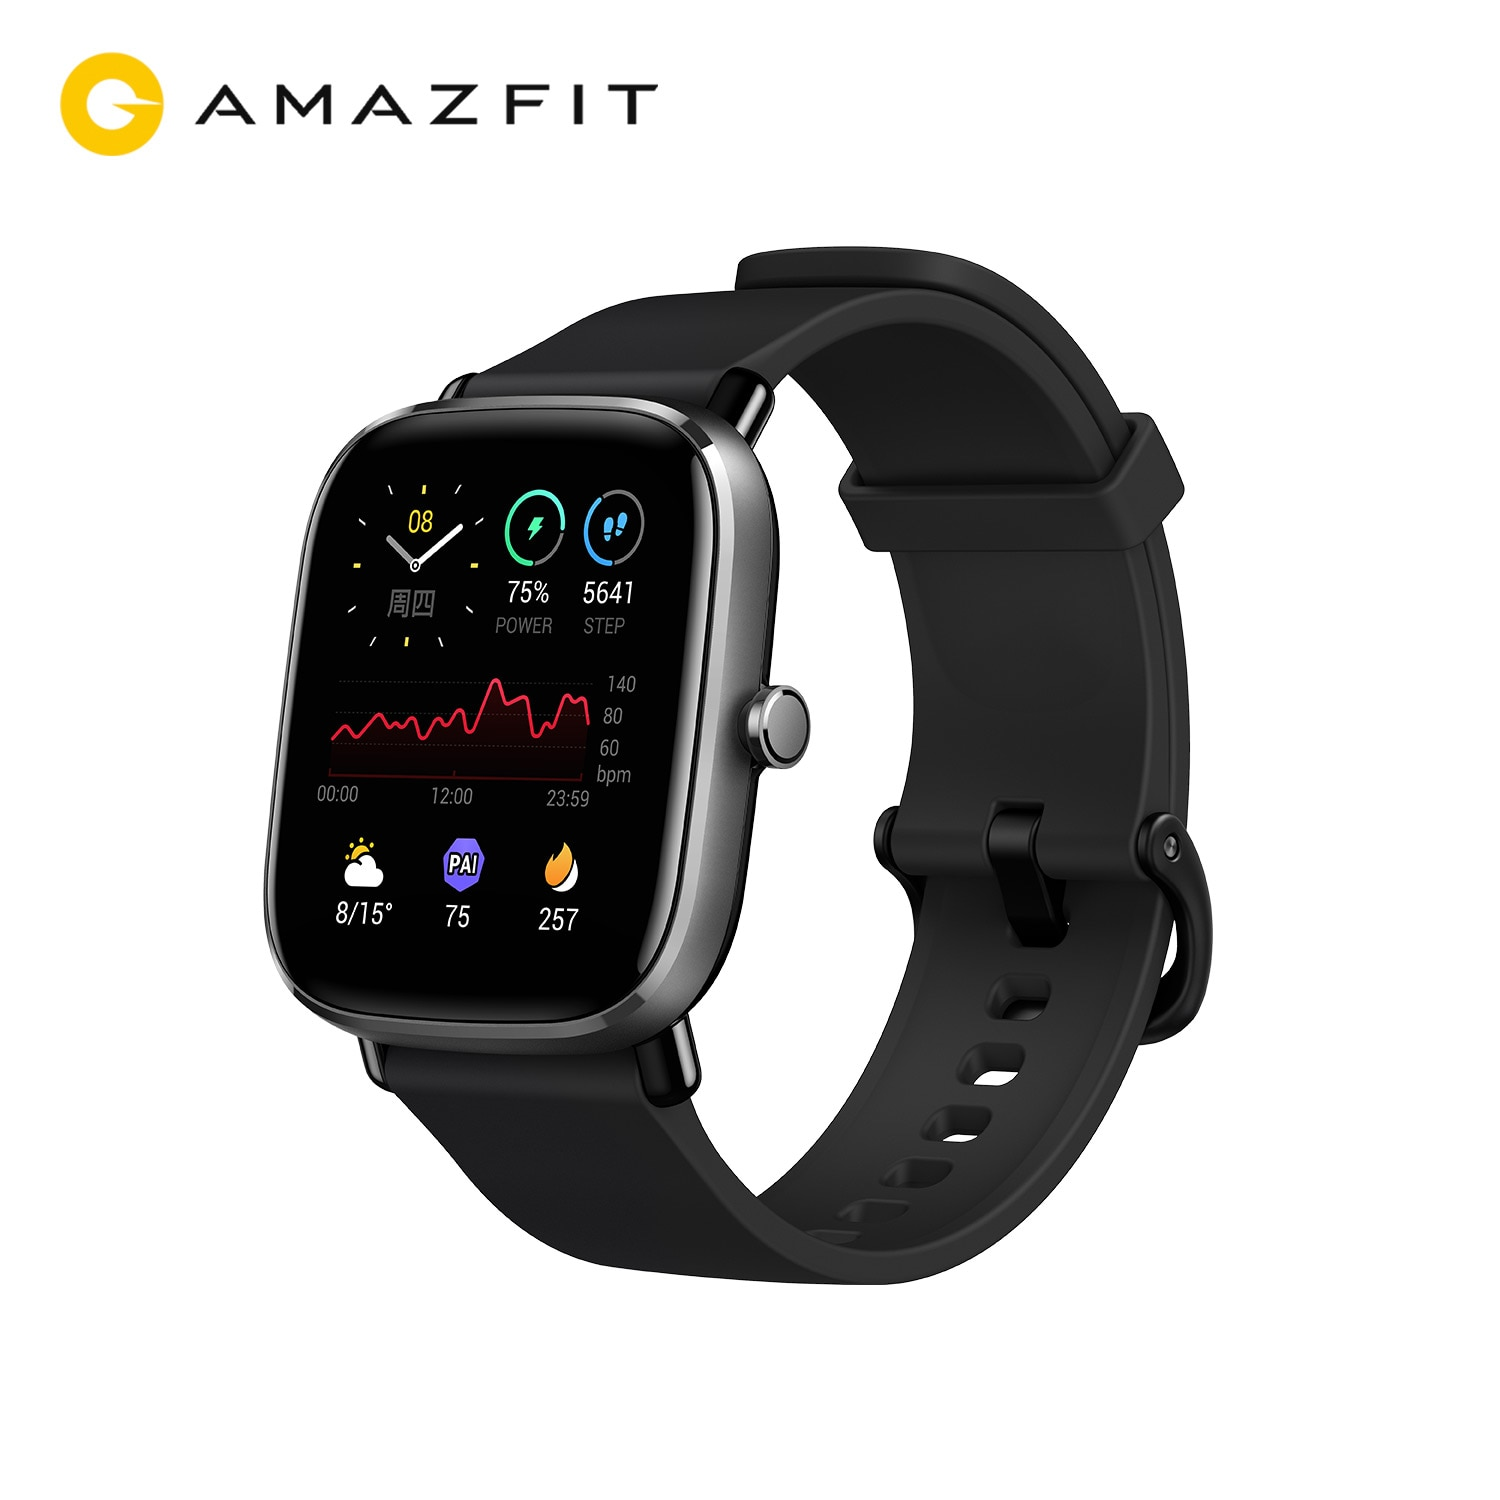 Original Amazfit GTS 2 Mini Smartwatch 70 Sports Modes Sleep Monitoring GPS AMOLED Display SmartWatch For Android For iOS